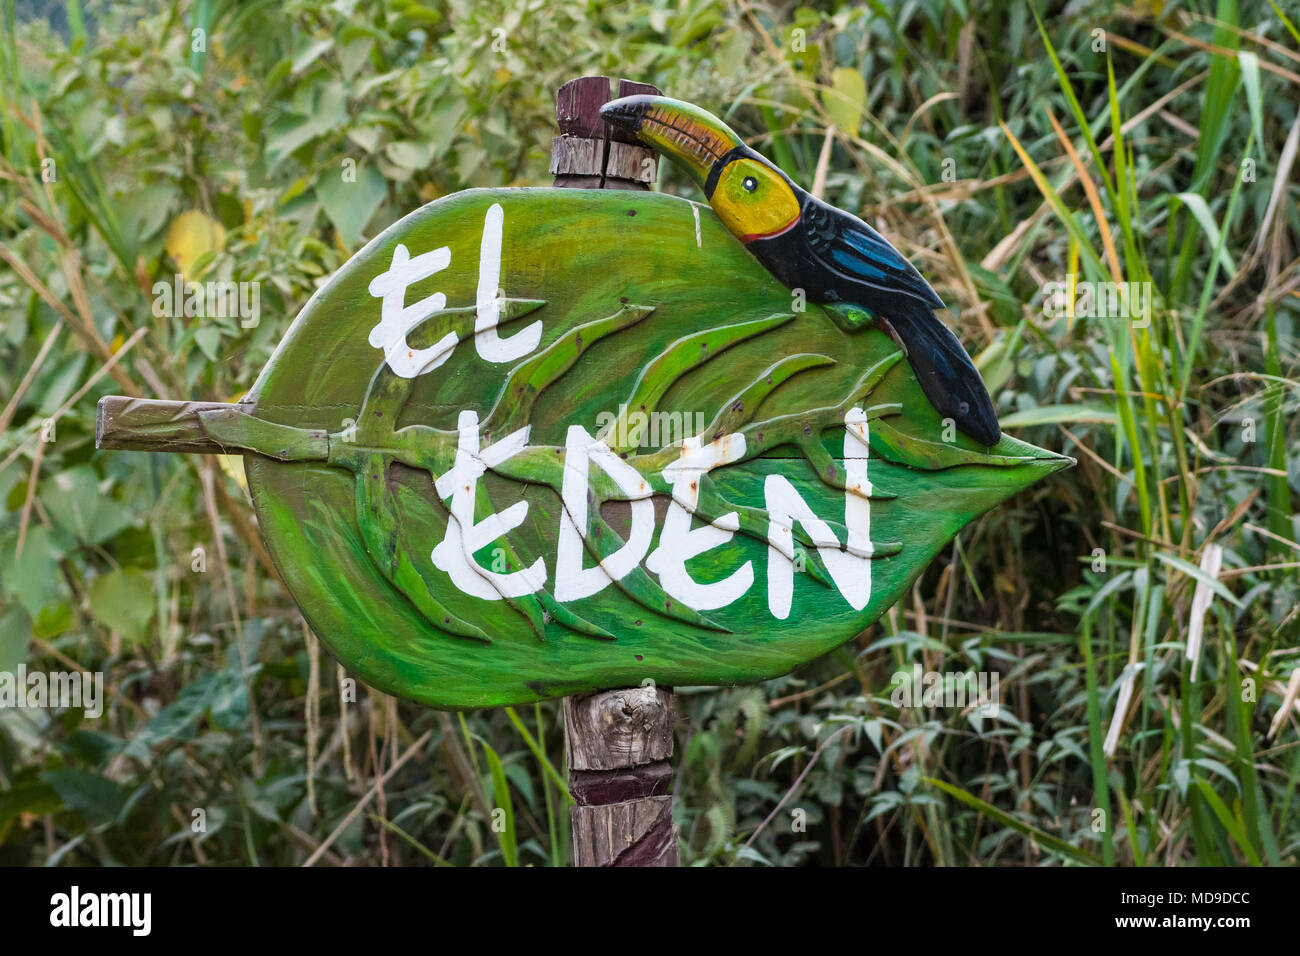 Colorfully painted, hand-crafted wooden sign to El Eden. Colombia, South America. - Stock Image